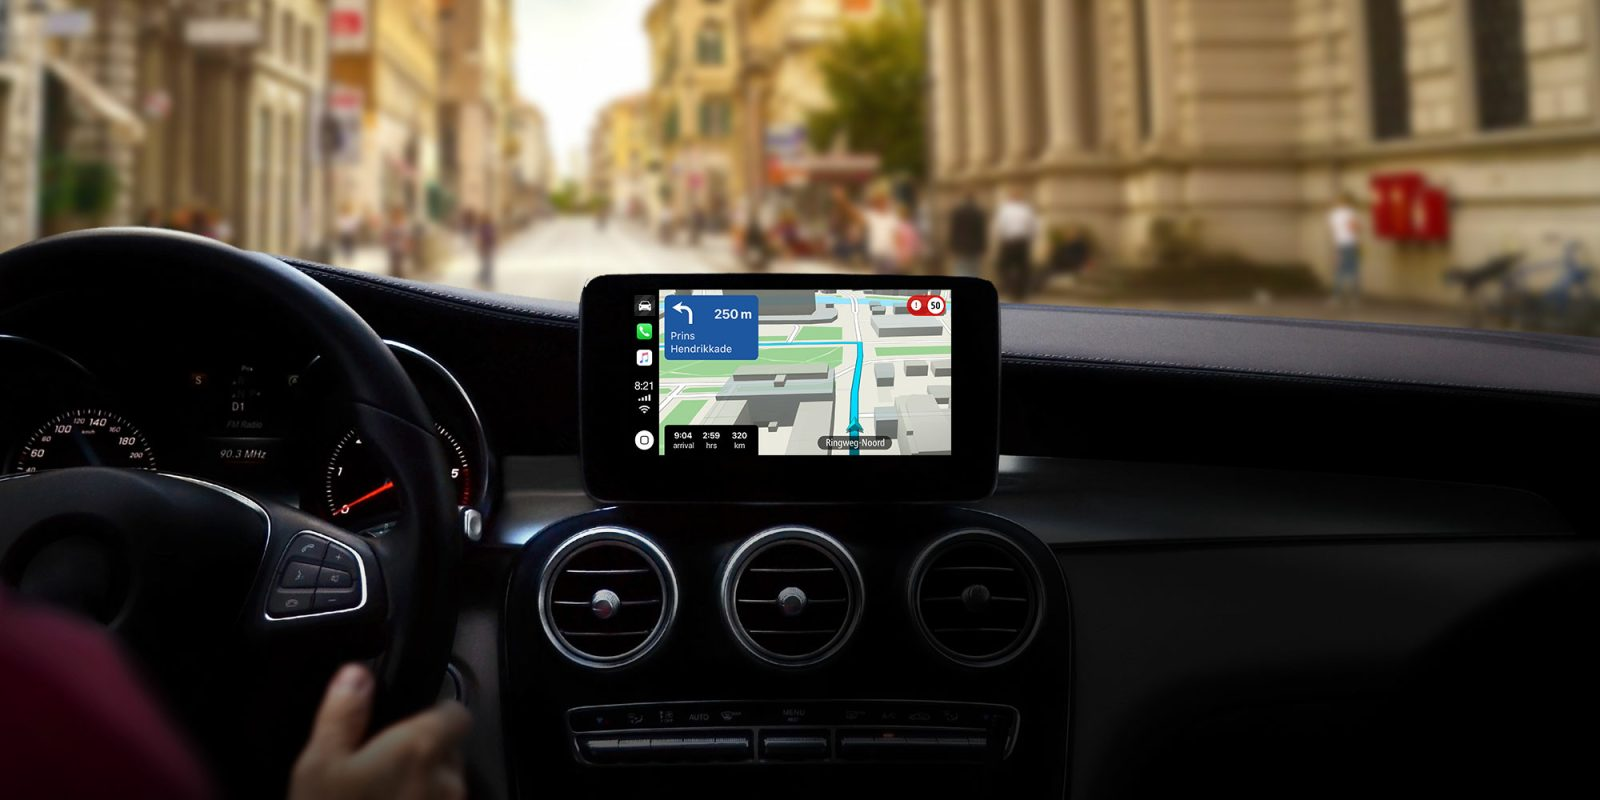 TomTom revamps navigation app with offline maps in CarPlay - 9to5Mac